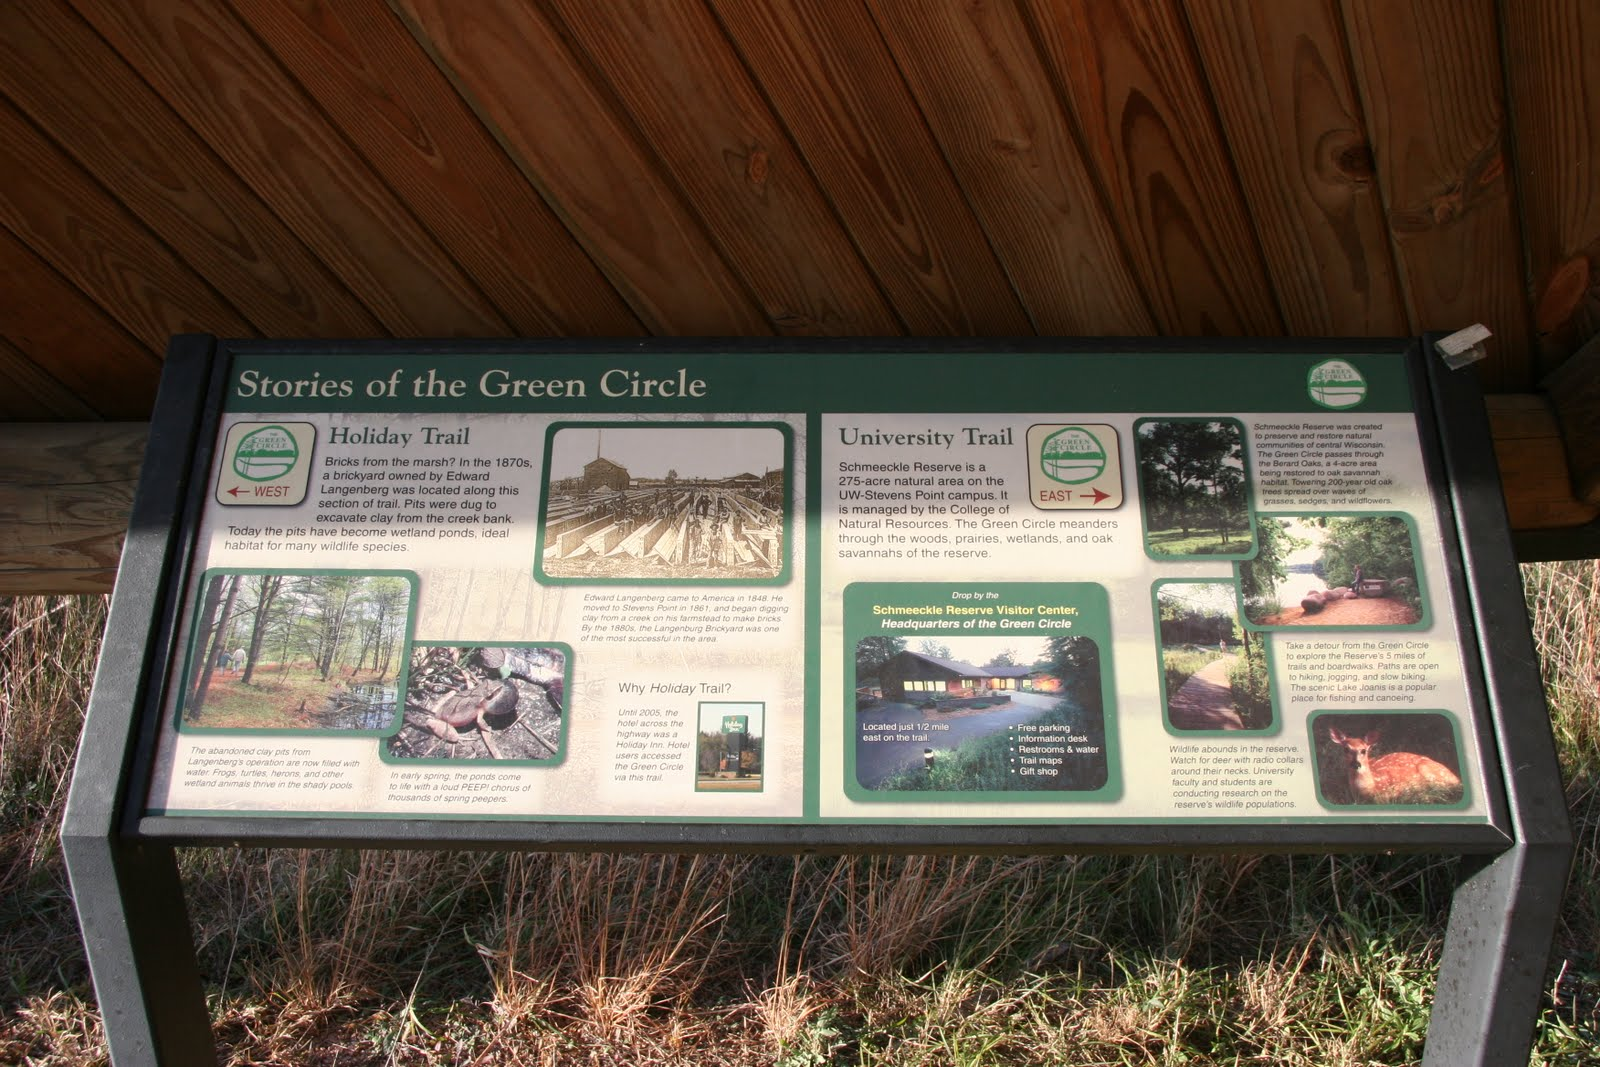 Green Circle Trailhead, University Trail